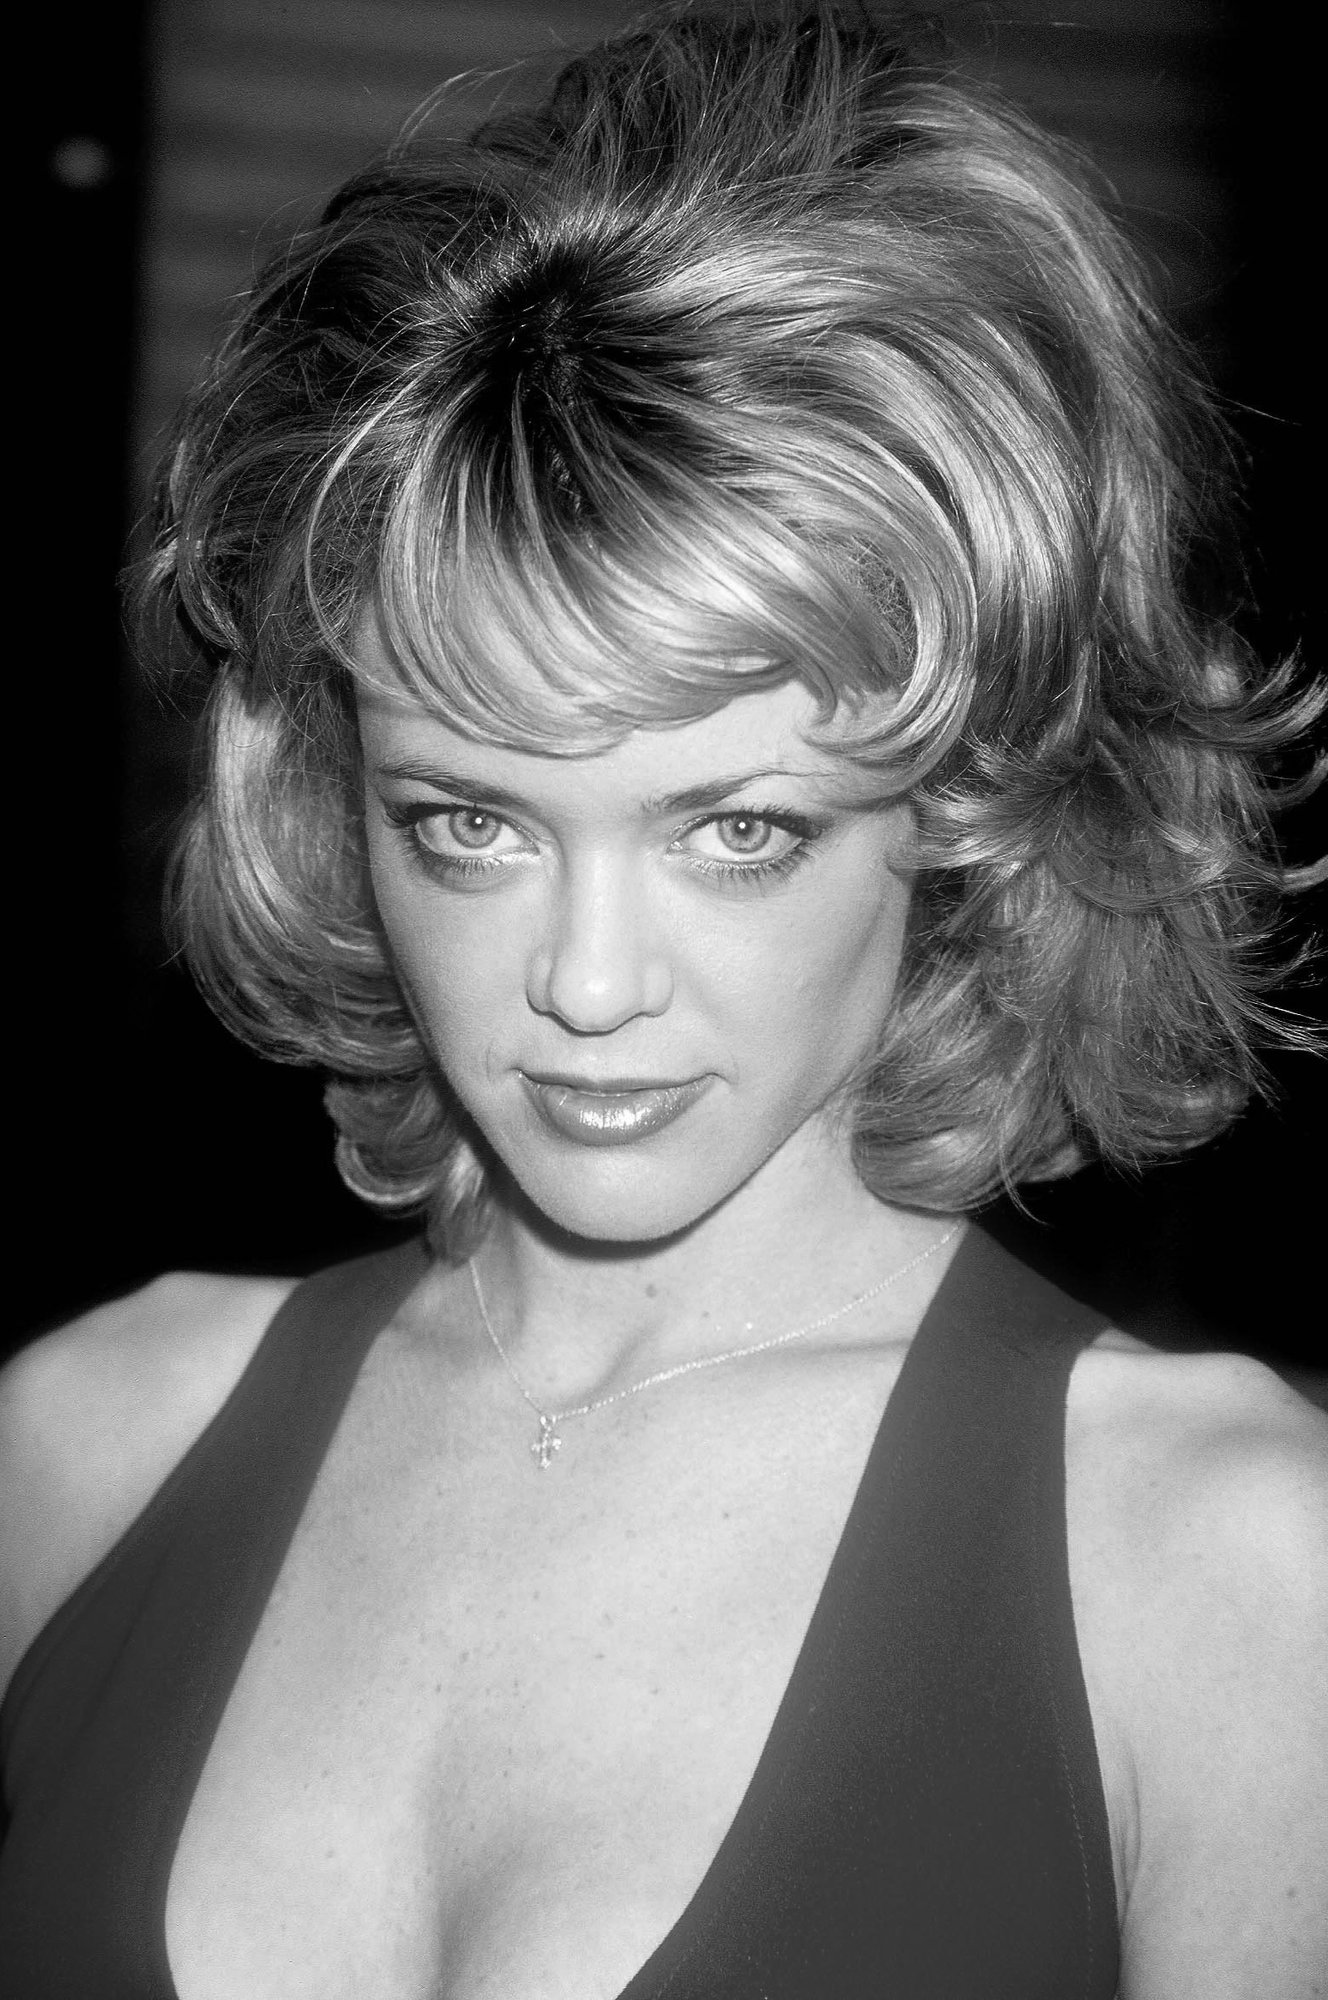 лиза робин келлиlisa robin kelly death, lisa robin kelly height weight, lisa robin kelly wiki, lisa robin kelly, lisa robin kelly that 70s show, лиза робин келли, lisa robin kelly dead, lisa robin kelly funeral, lisa robin kelly cause of death, lisa robin kelly net worth, lisa robin kelly drugs, lisa robin kelly hot, lisa robin kelly mugshot, lisa robin kelly death ashton kutcher, lisa robin kelly feet, lisa robin kelly husband, lisa robin kelly muere, lisa robin kelly imdb, lisa robin kelly mort, lisa robin kelly ashton kutcher